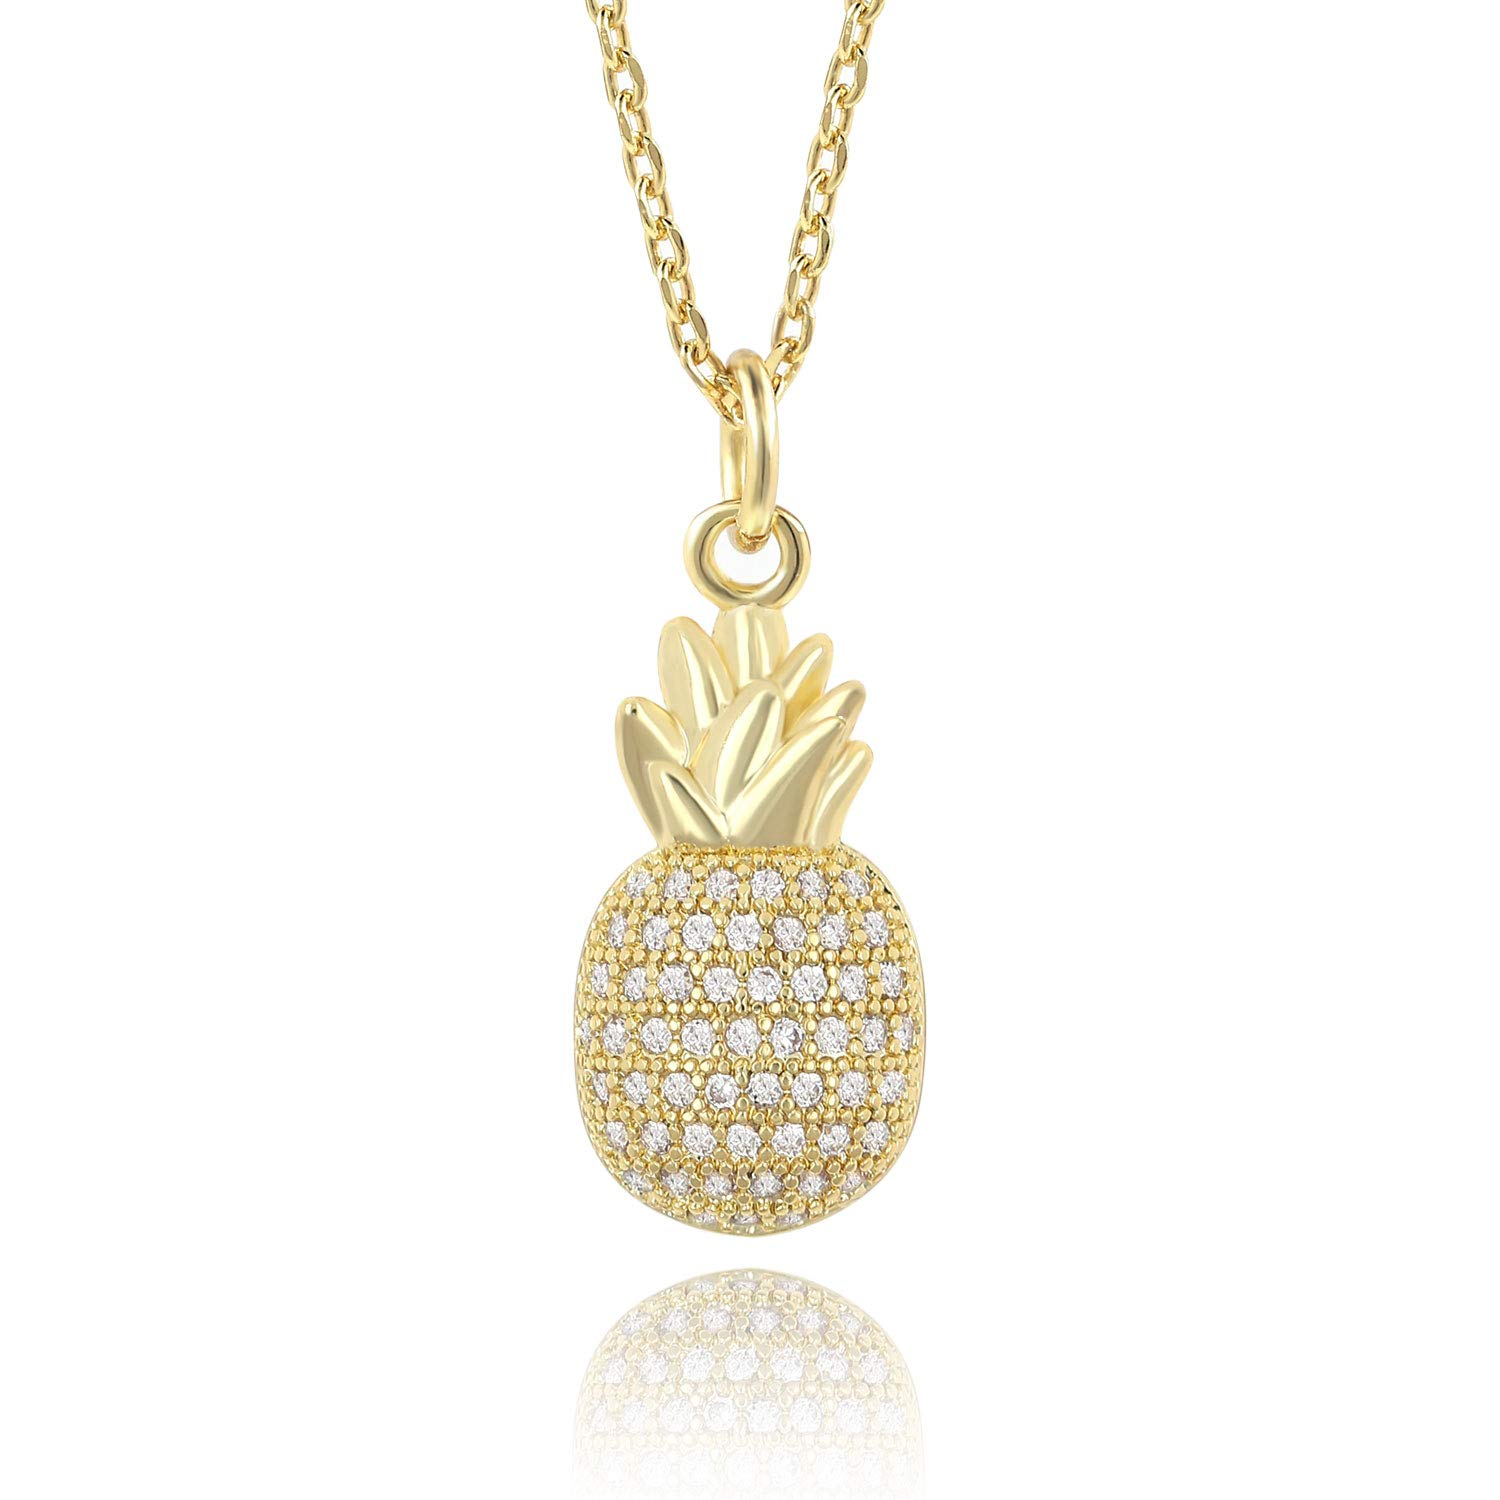 Ash's Choice CZ Paved Bling Pineapple Fruit Pendant AAA Quality 14K Gold Charm Necklace 16+2'' Extender